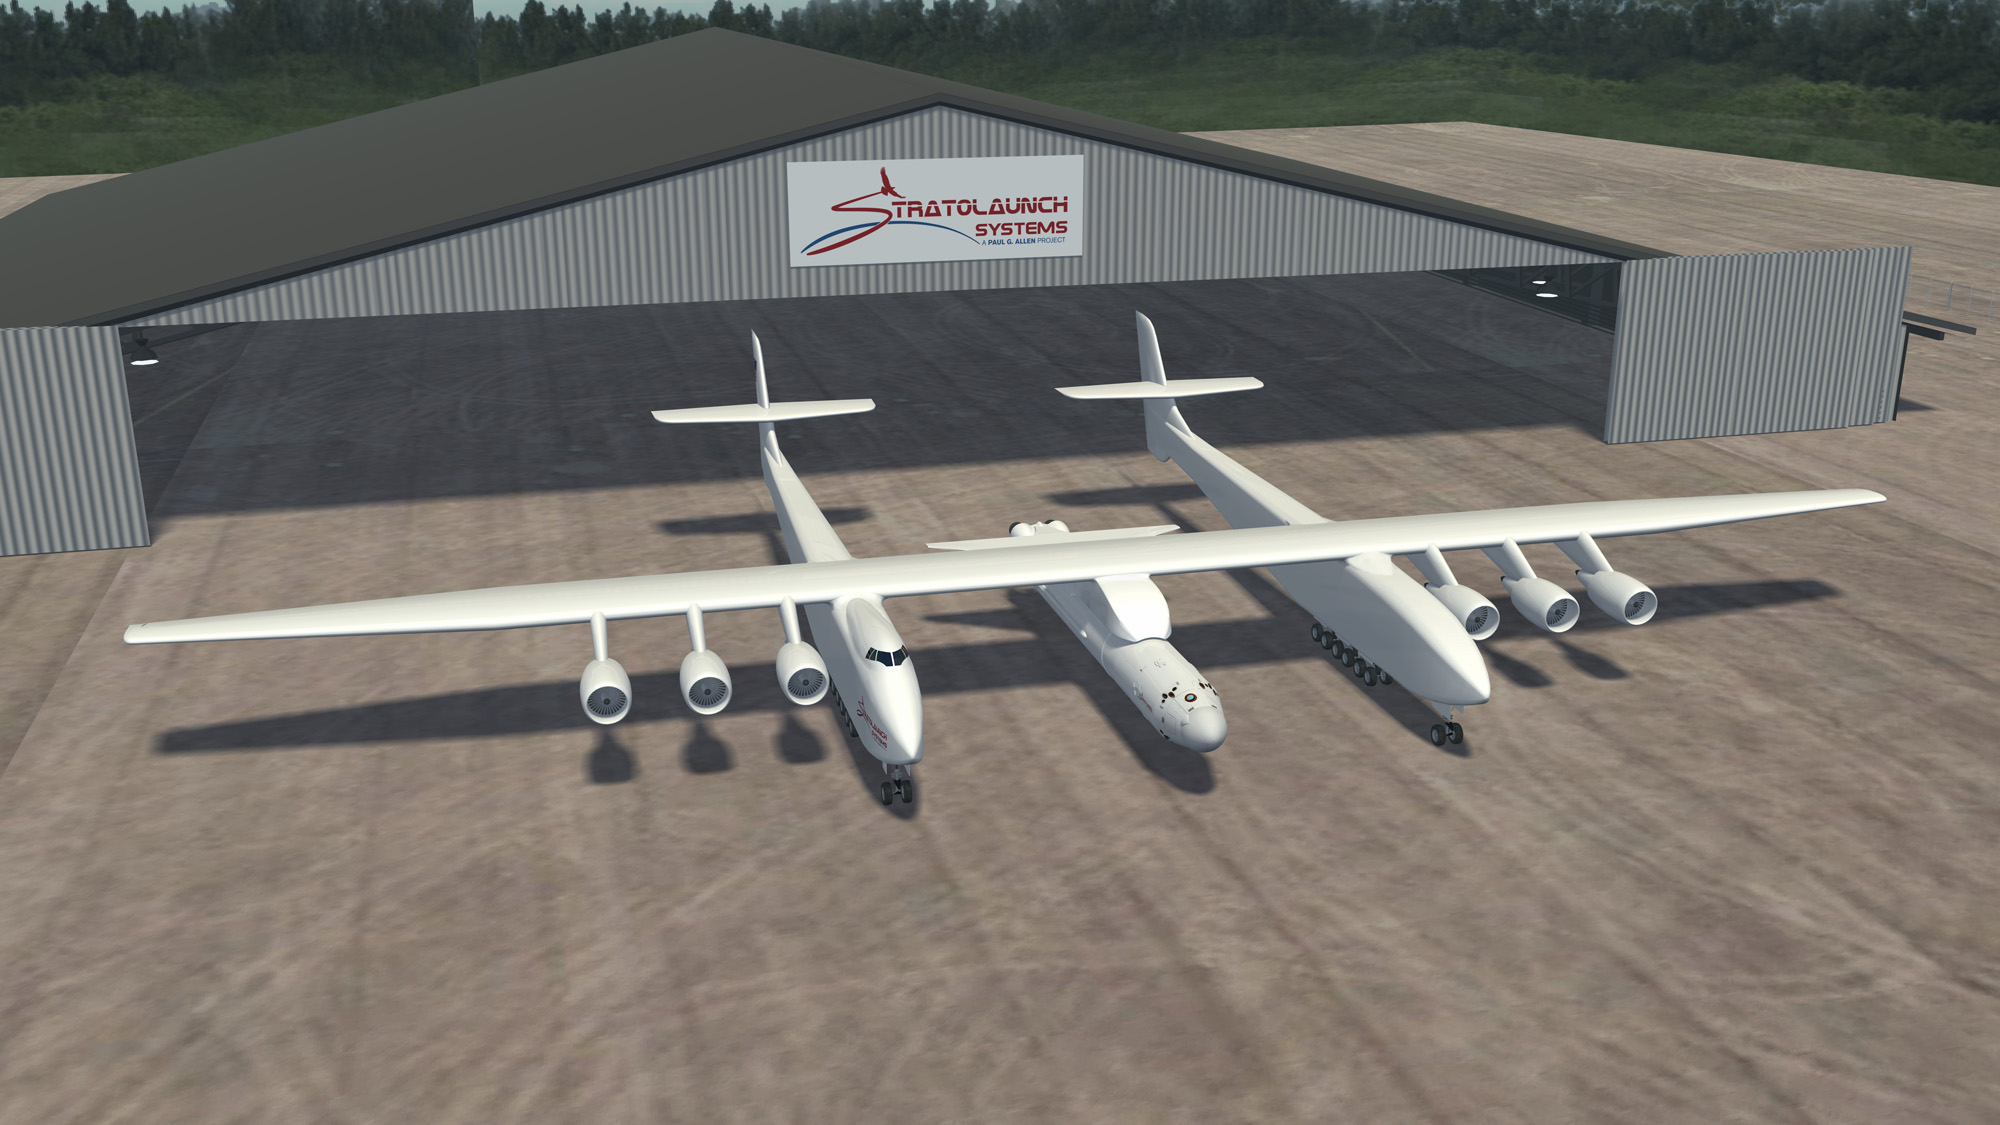 Stratolaunch Maximizes Launch Flexibility